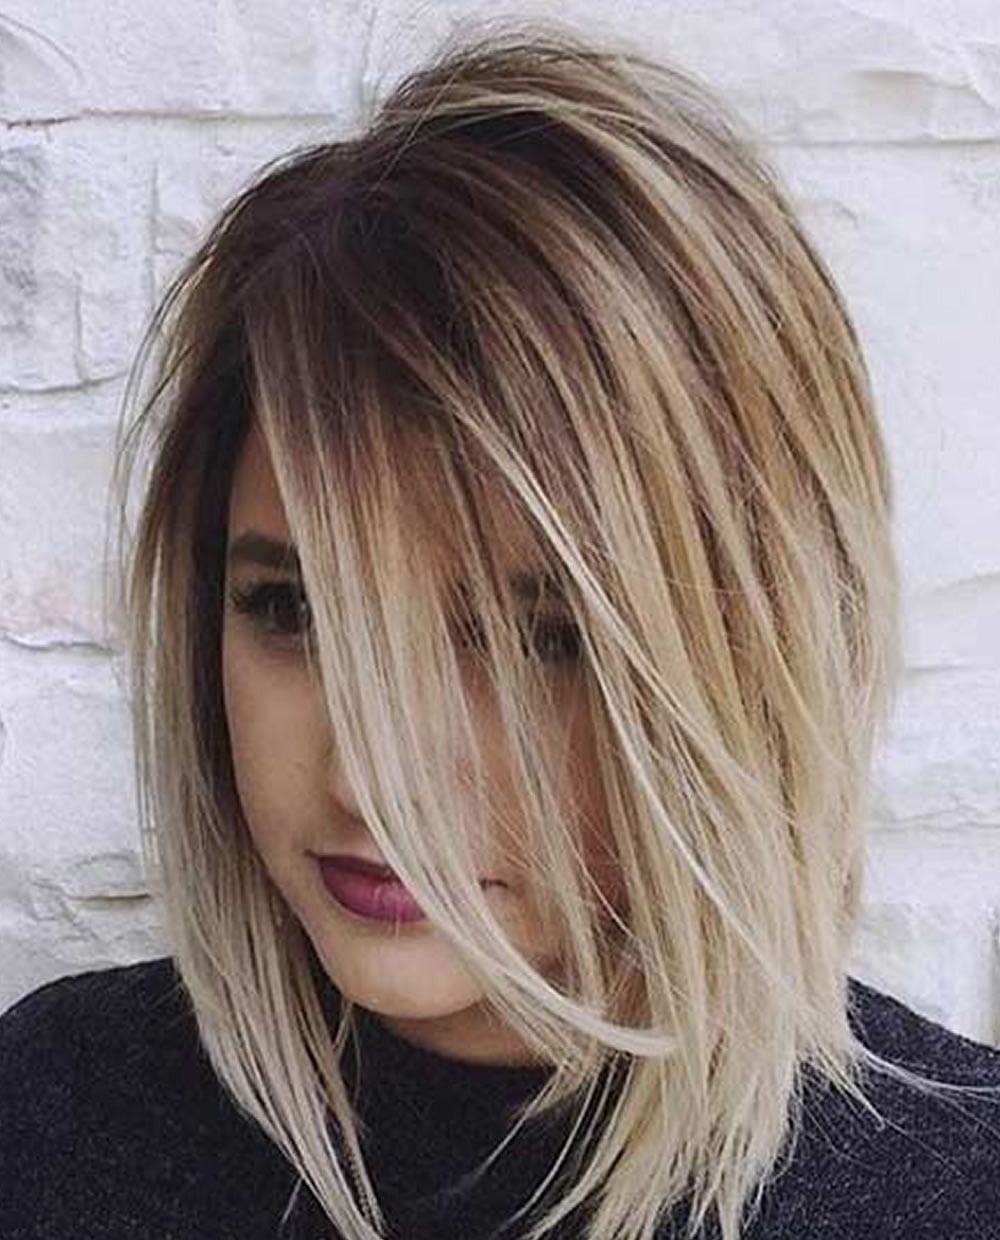 Watch 30 Chic Short Bob Hairstyles for 2019 video